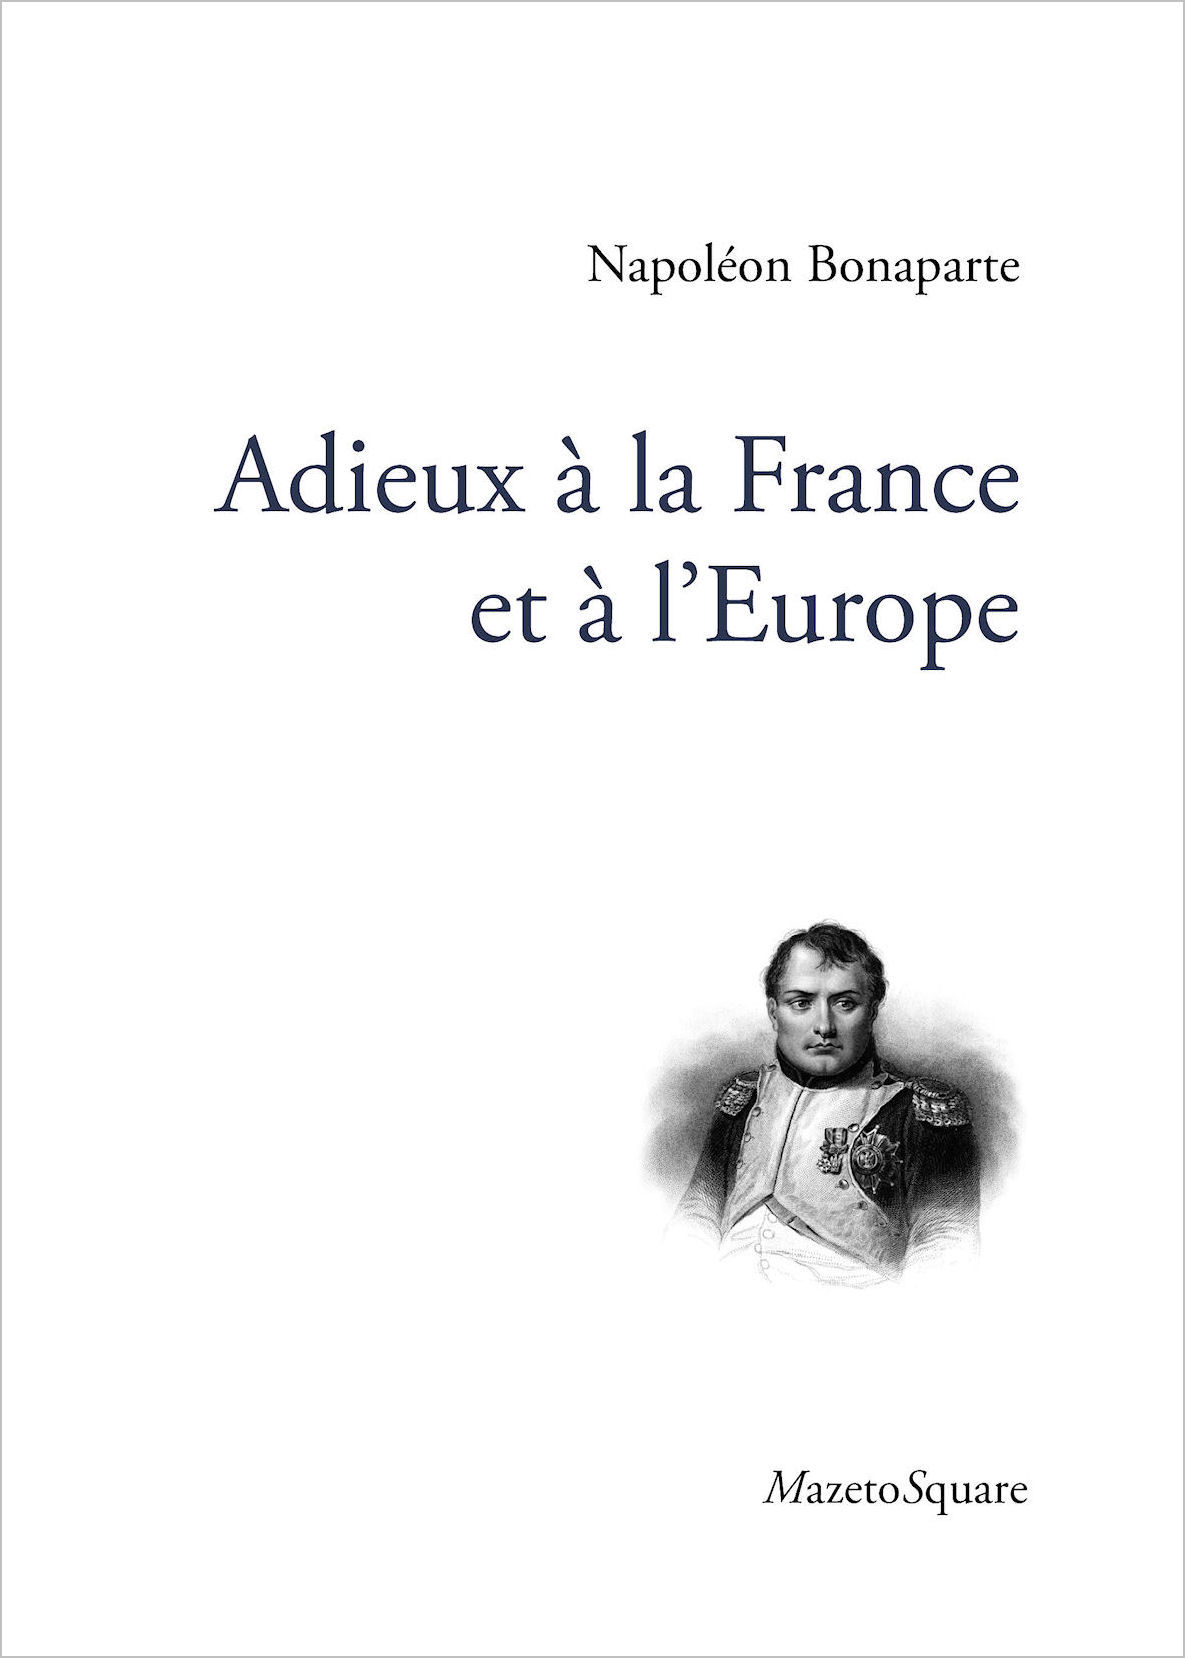 ADIEUX A LA FRANCE ET A L'EUROPE